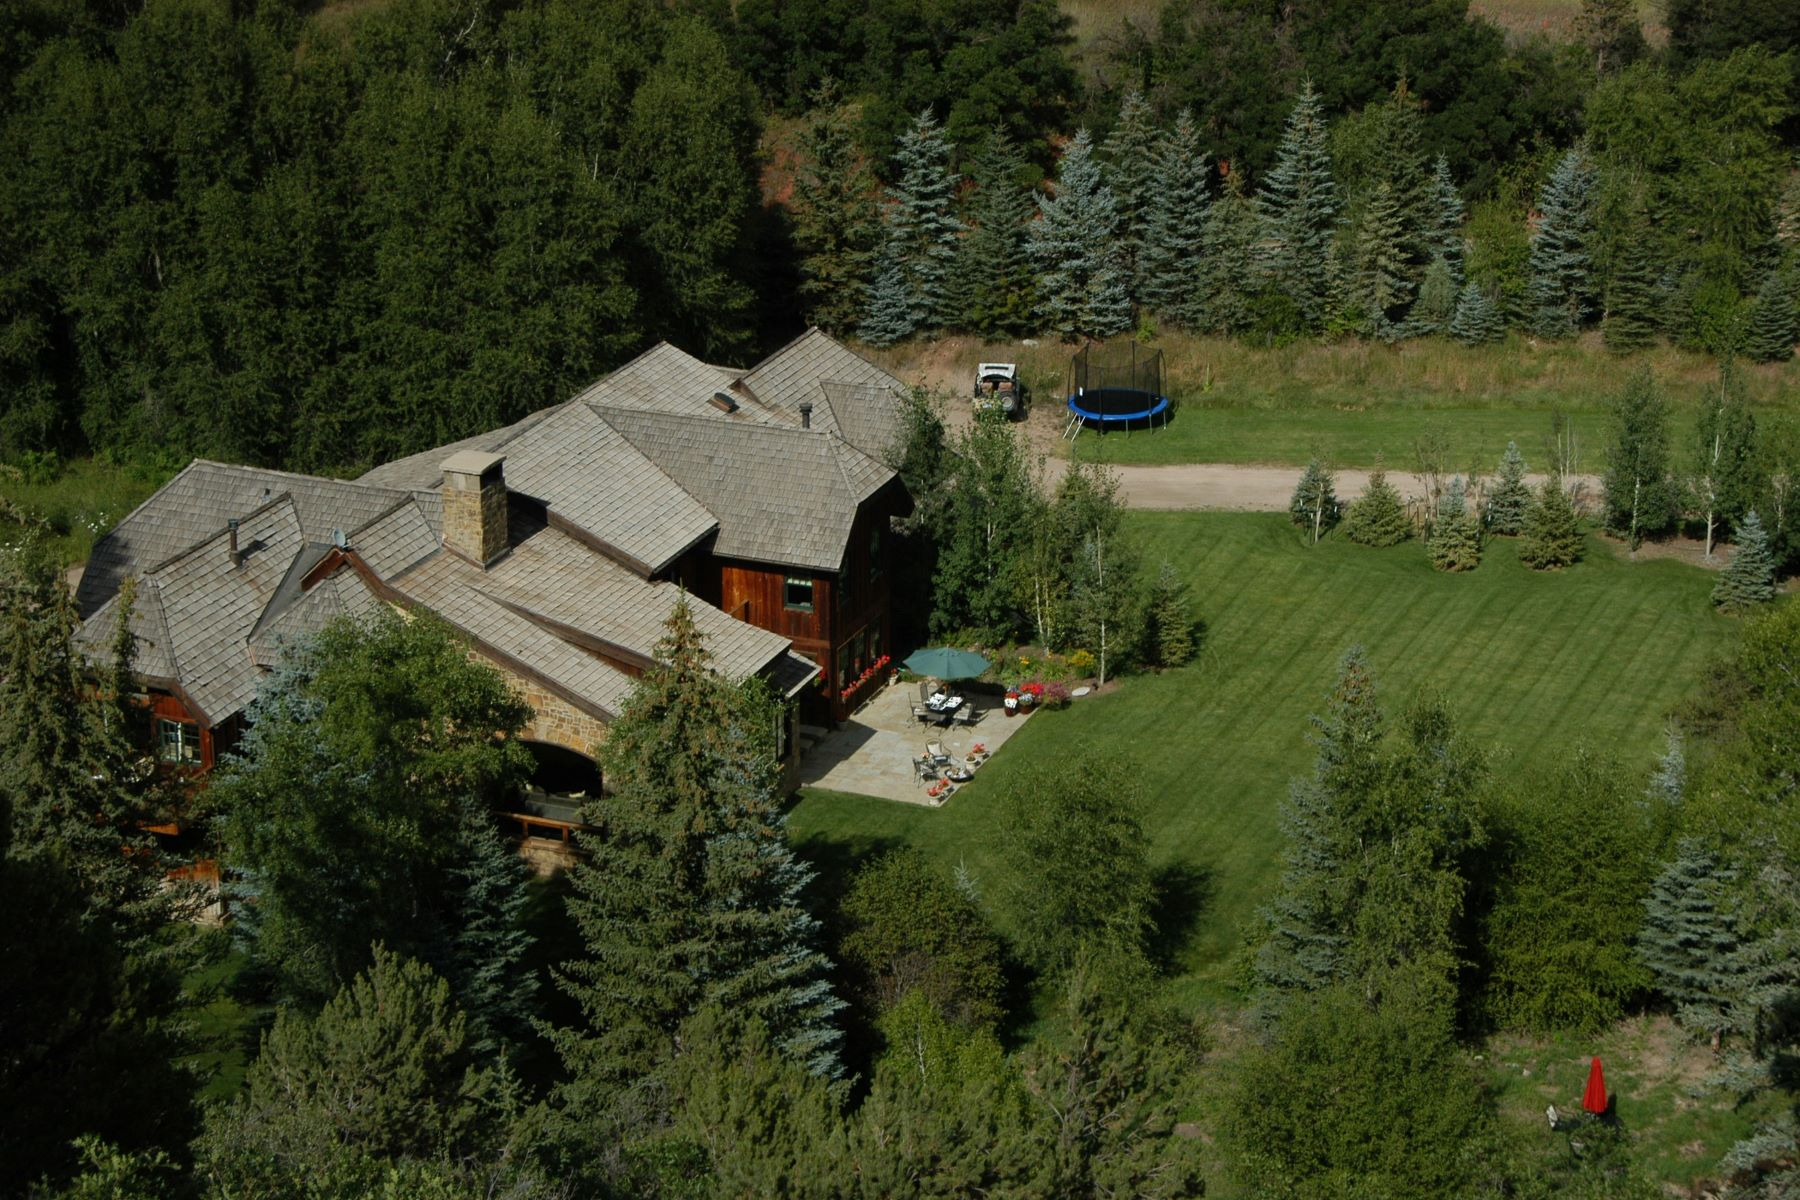 Single Family Home for Sale at Snowmass Creek Paradise 333 Snowmass Creek Road, Snowmass, Colorado, 81654 United States